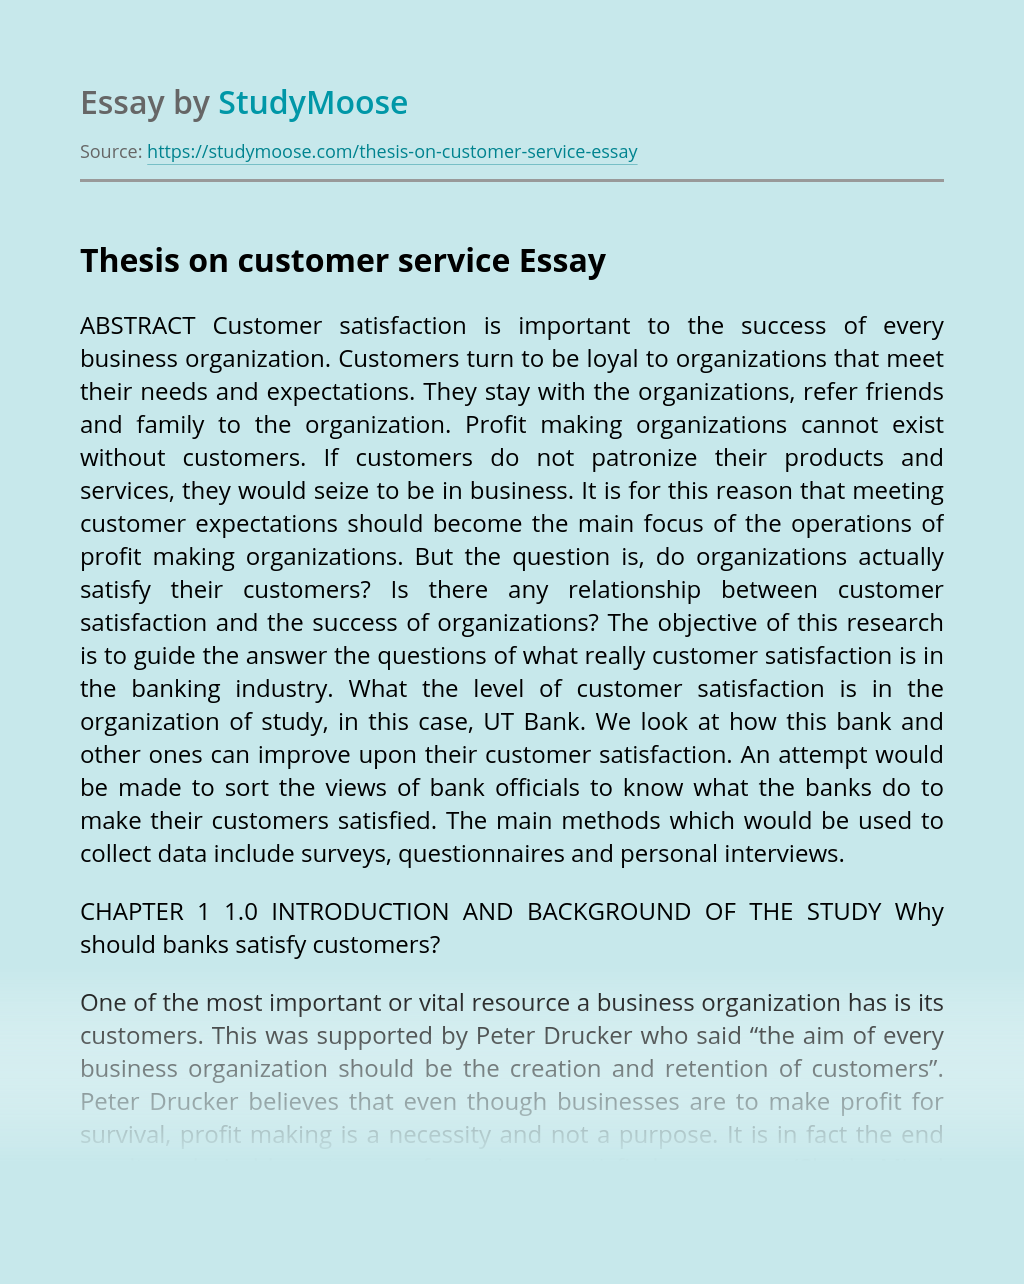 Thesis on customer service